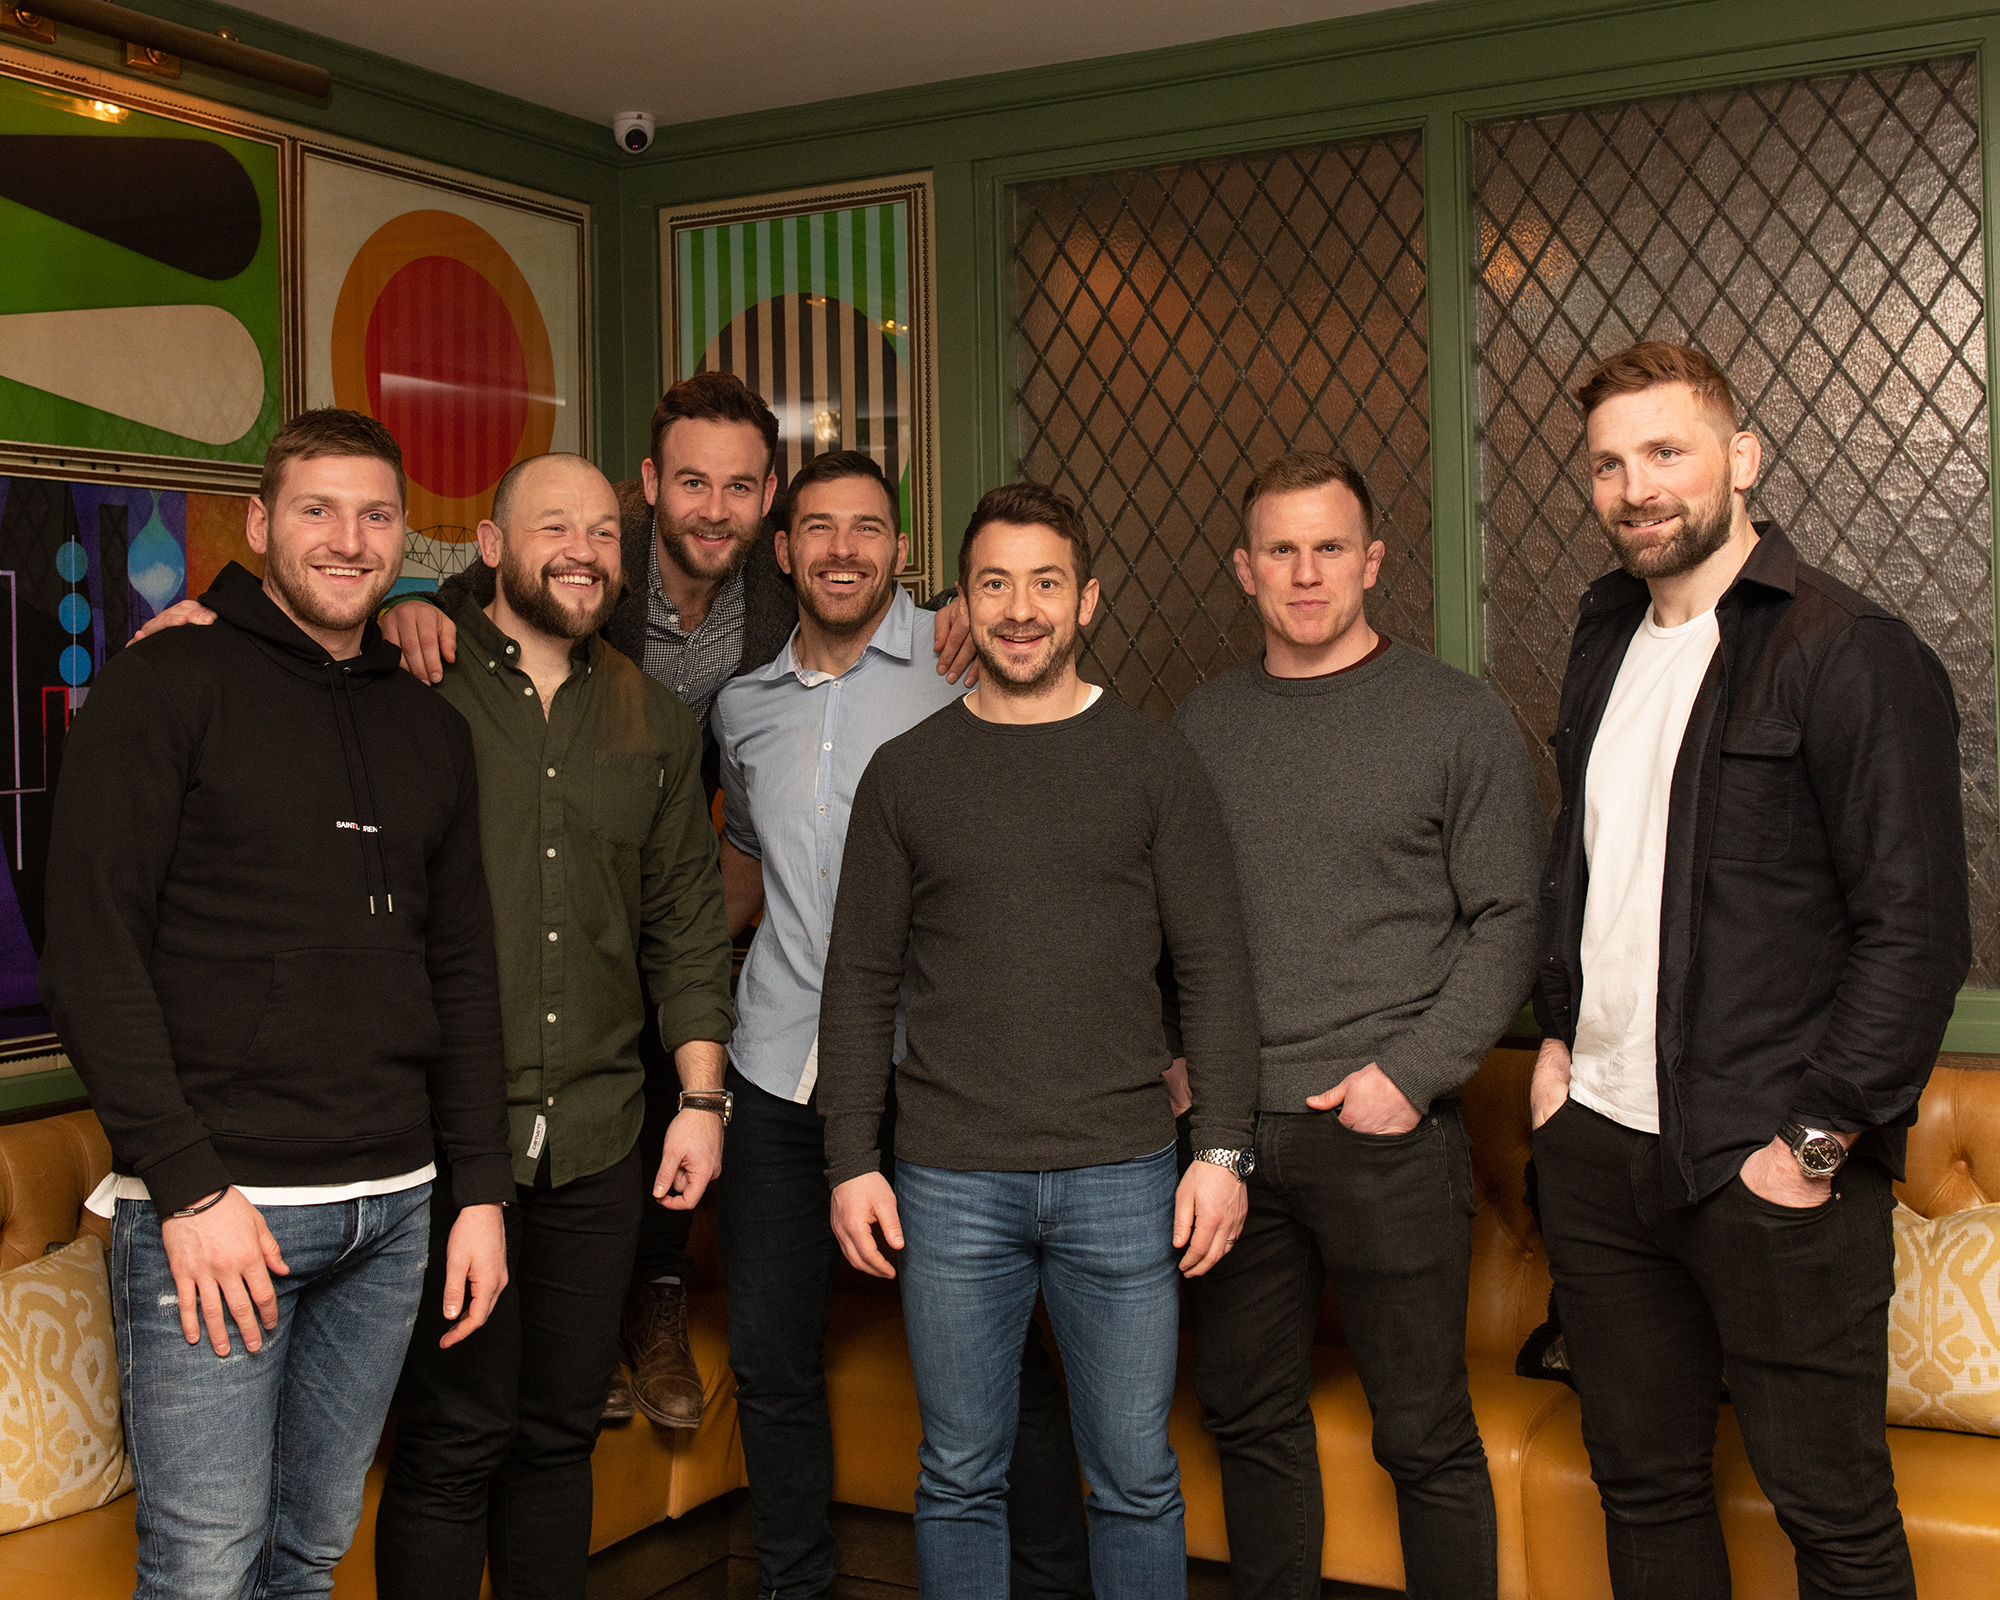 From left to right: Scottish Rugby players Finn Russell, Ryan Grant, Ruaridh Jackson, Sean Lamont, Greig Laidlaw, Chris Fusaro, John Barclay. Taken at The Ivy on the Square.